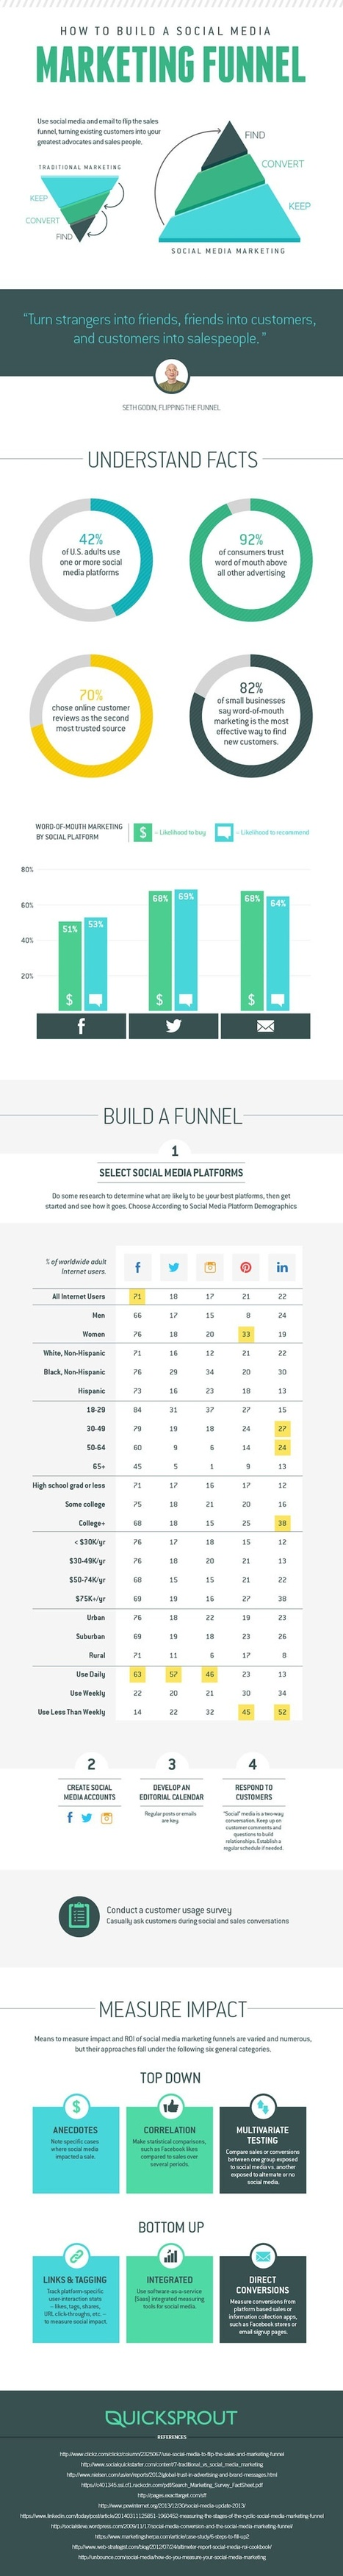 Infographic: How To Build Your Own Marketing Funnel on Social Media | Growth Hacking | Scoop.it